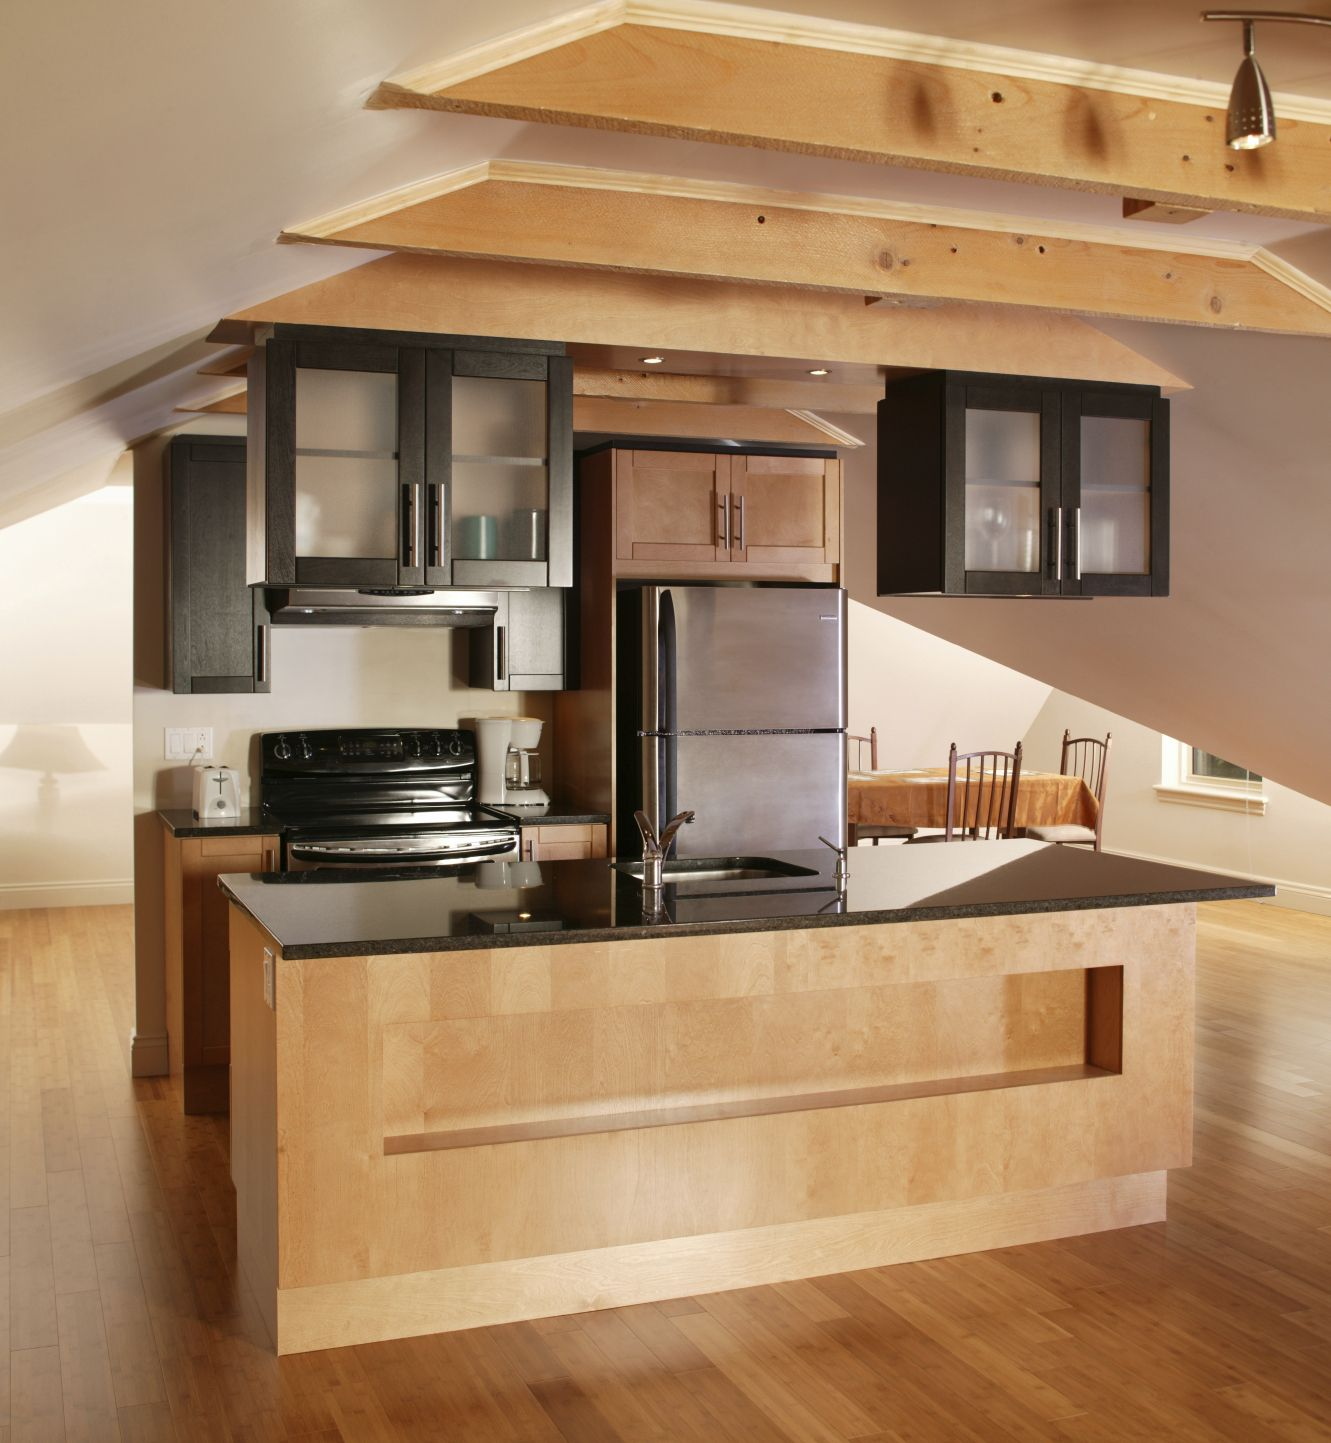 49 Contemporary Highend Natural Wood Kitchen Designs Alluring Kitchen Designs With High Ceilings Decorating Inspiration